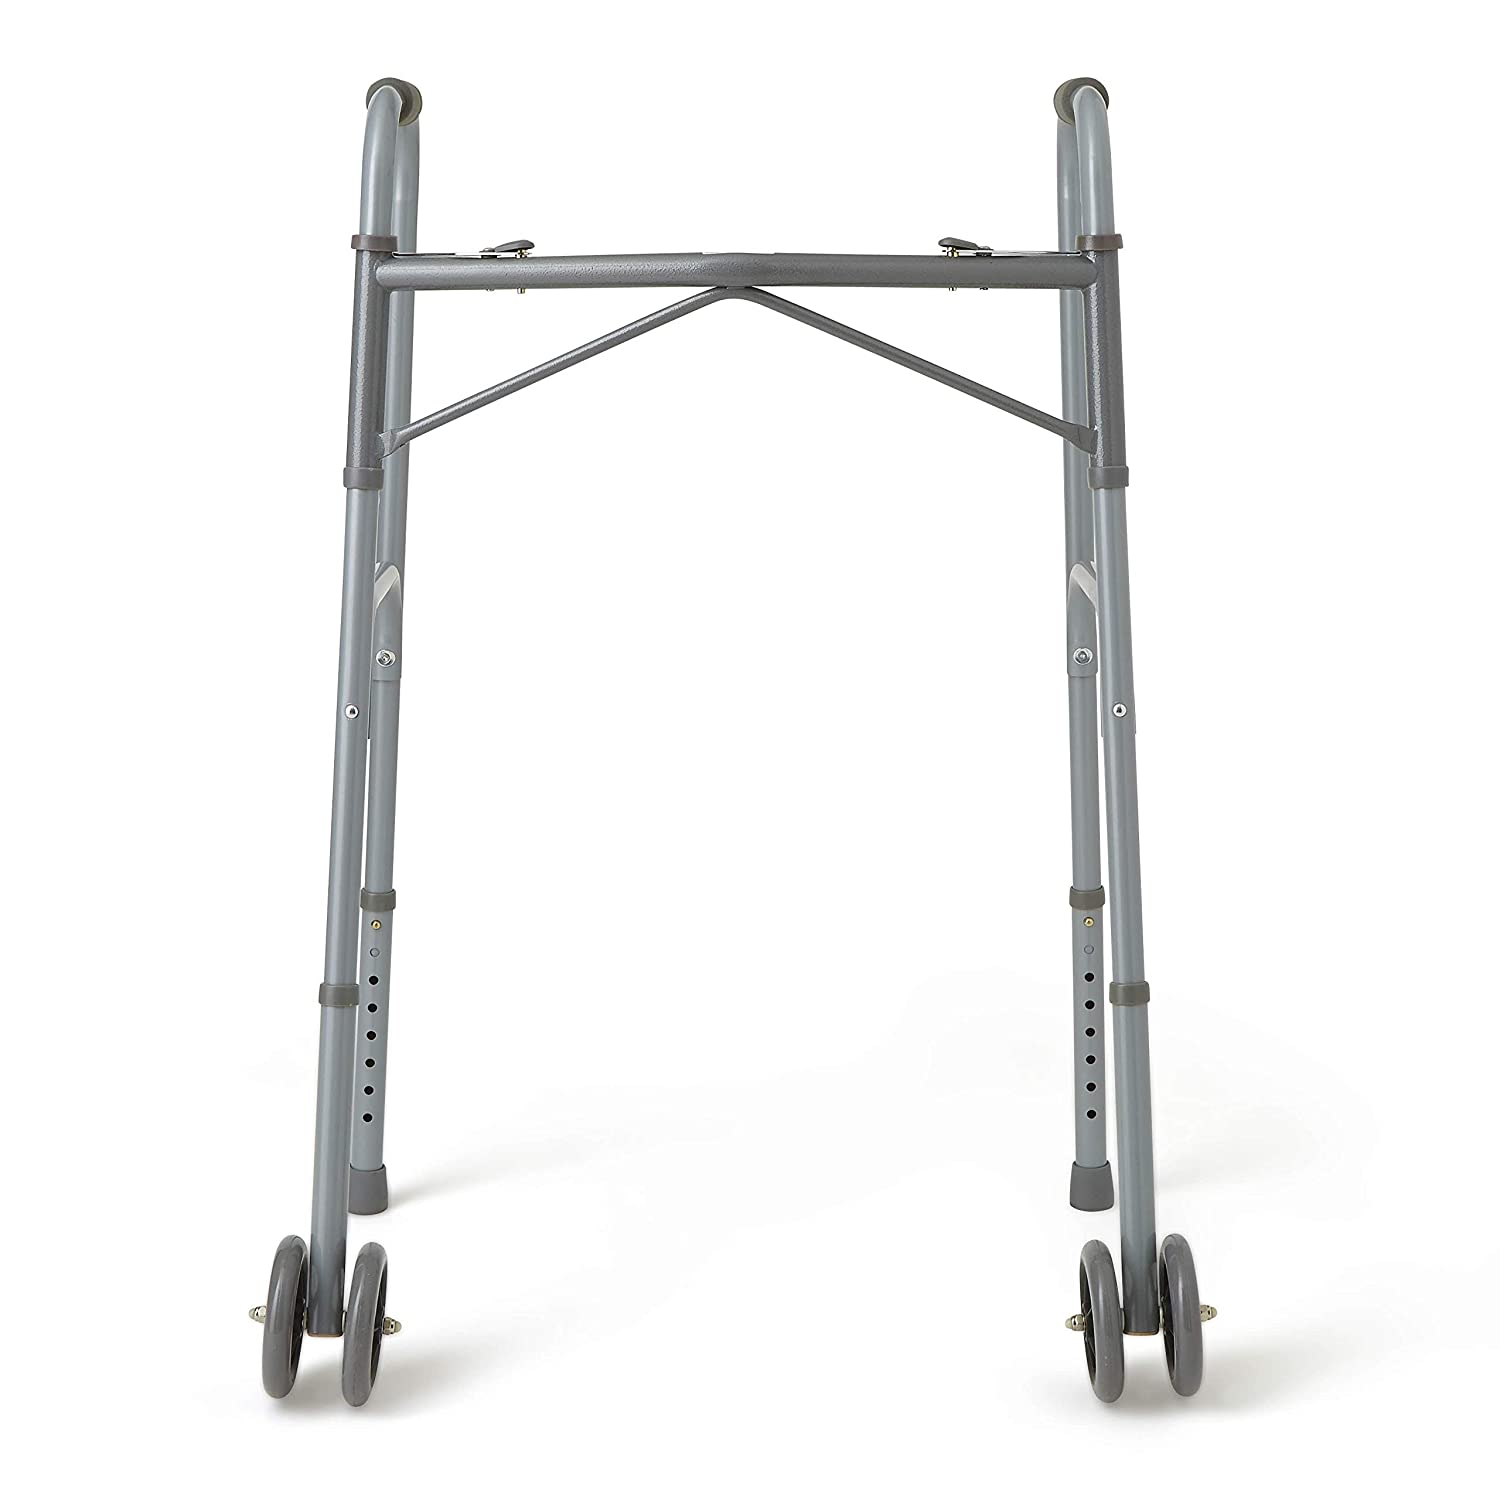 Amazon.com: Medline Bariatric – Andador plegable con ruedas ...